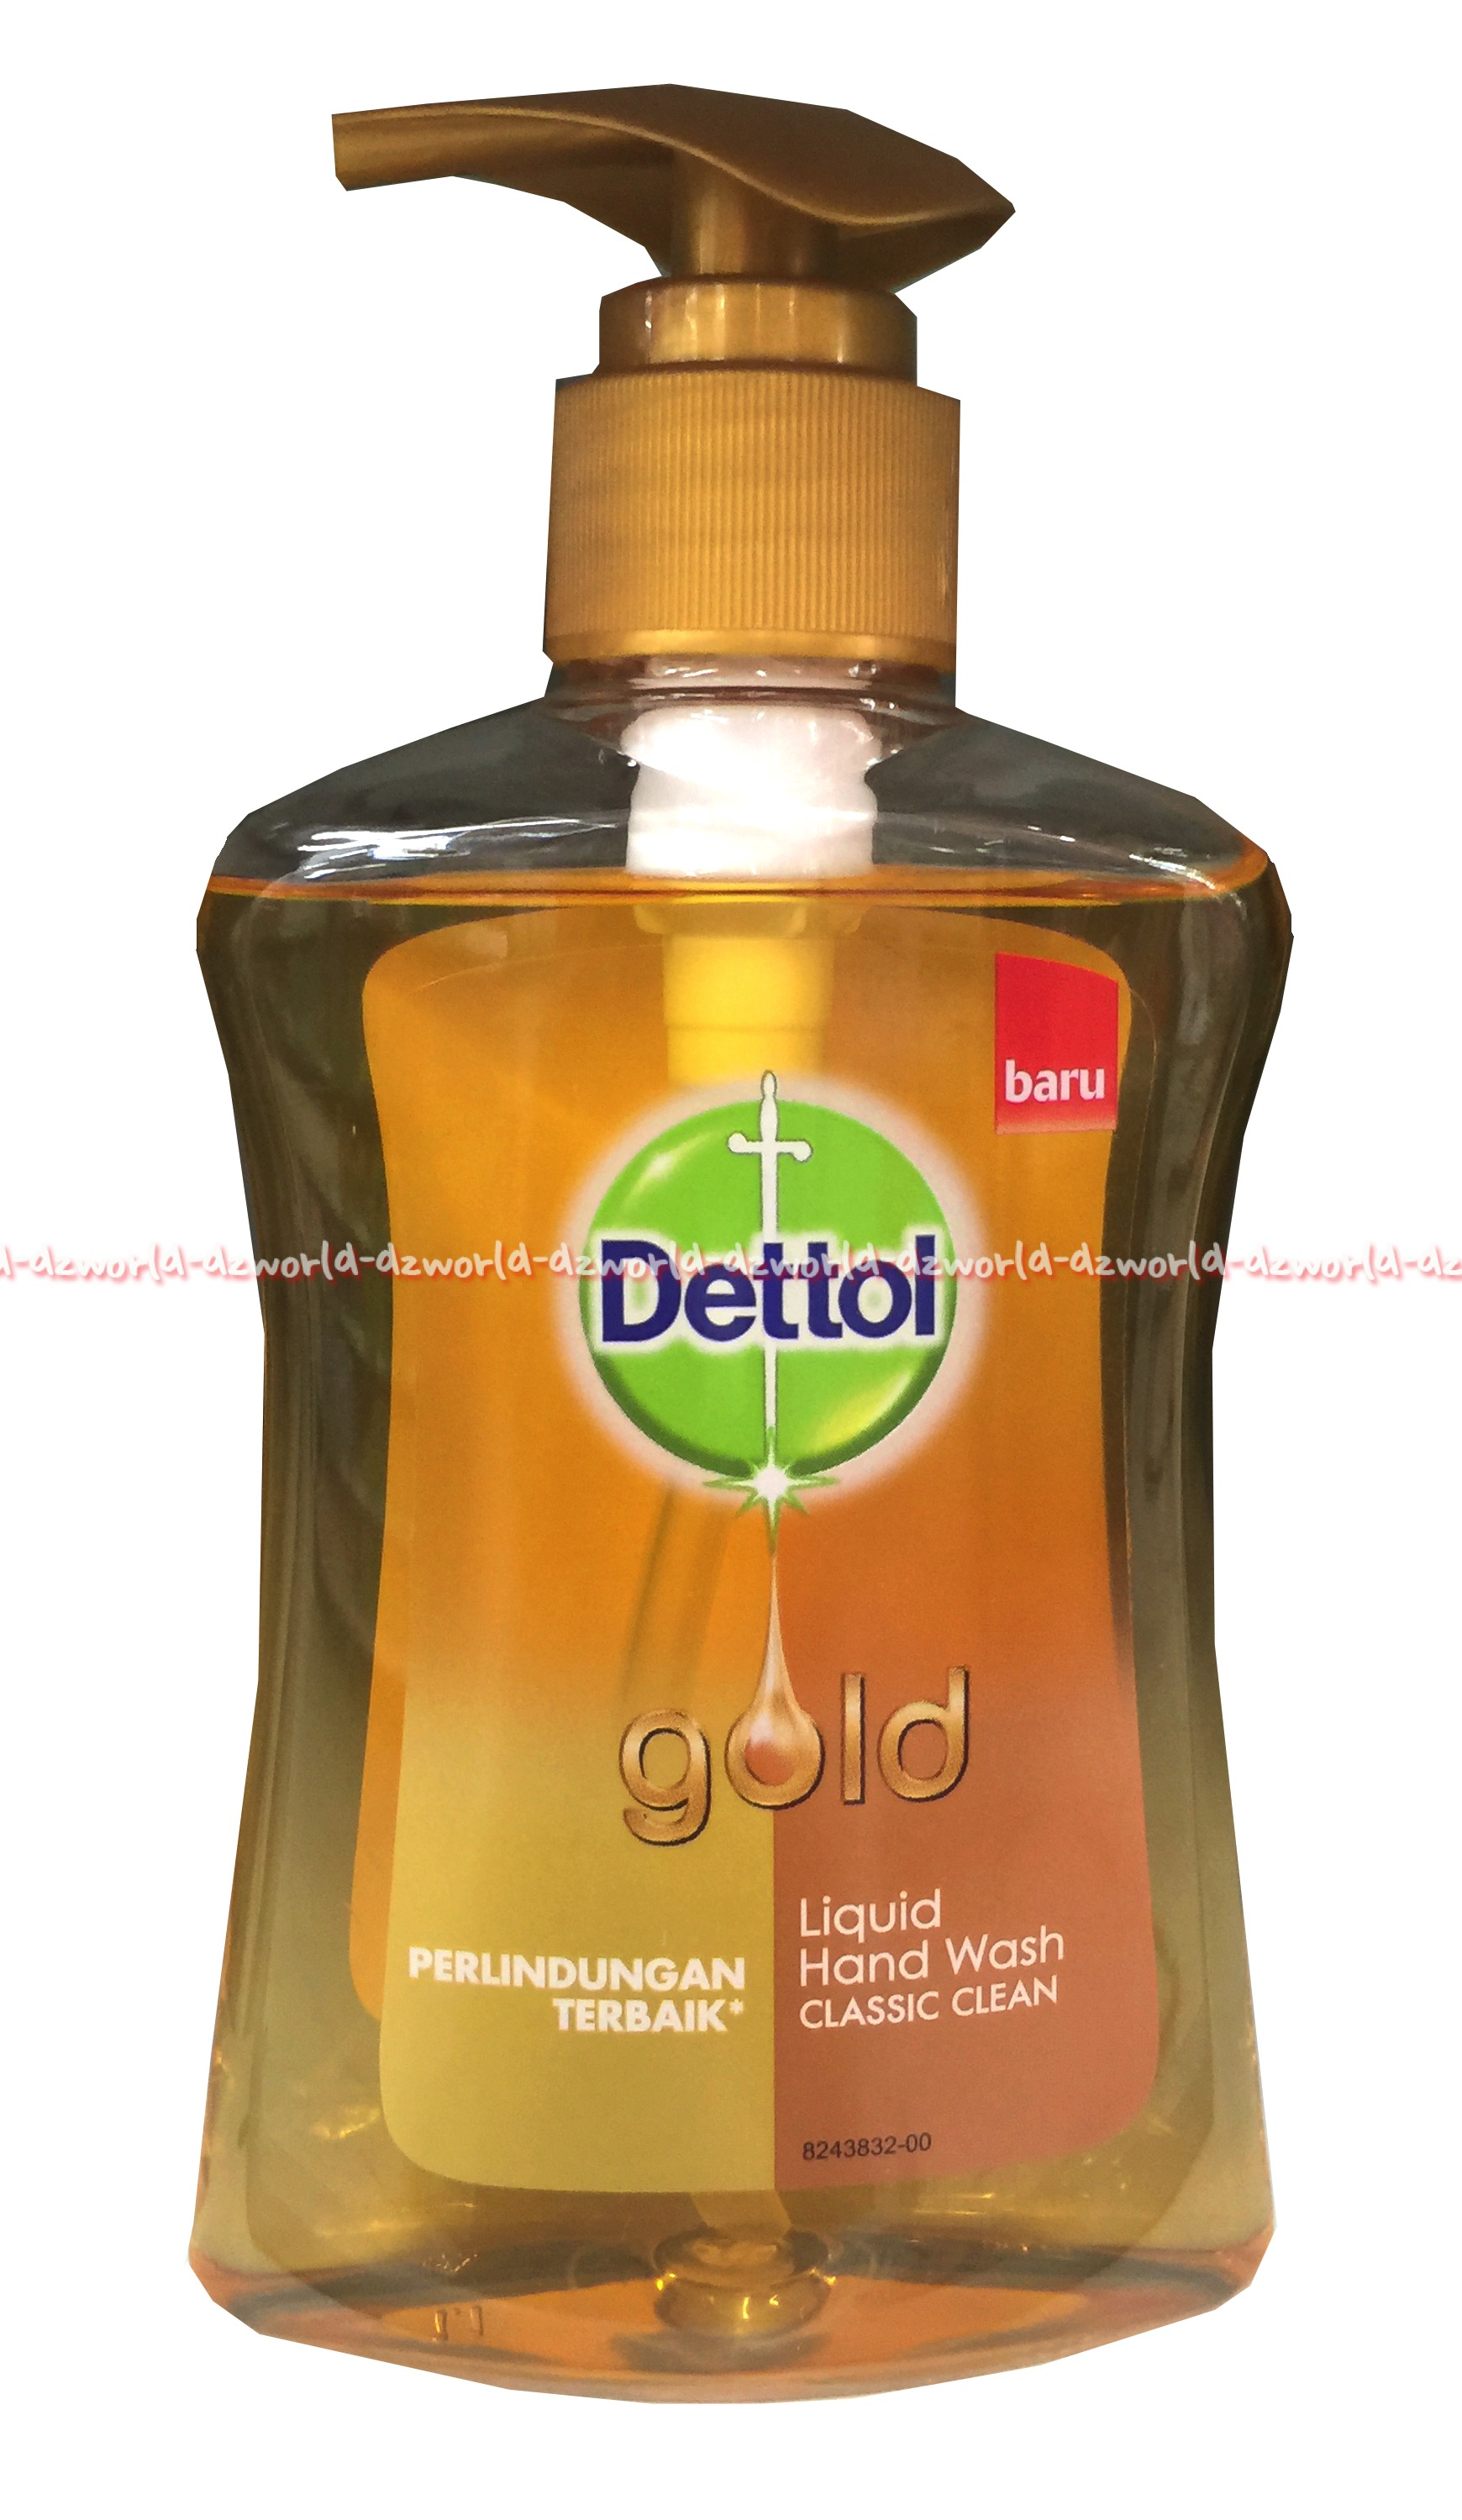 Dettol Gold Liquid Hand Wash Sabun Cuci Tangan Detol Gold 200ml